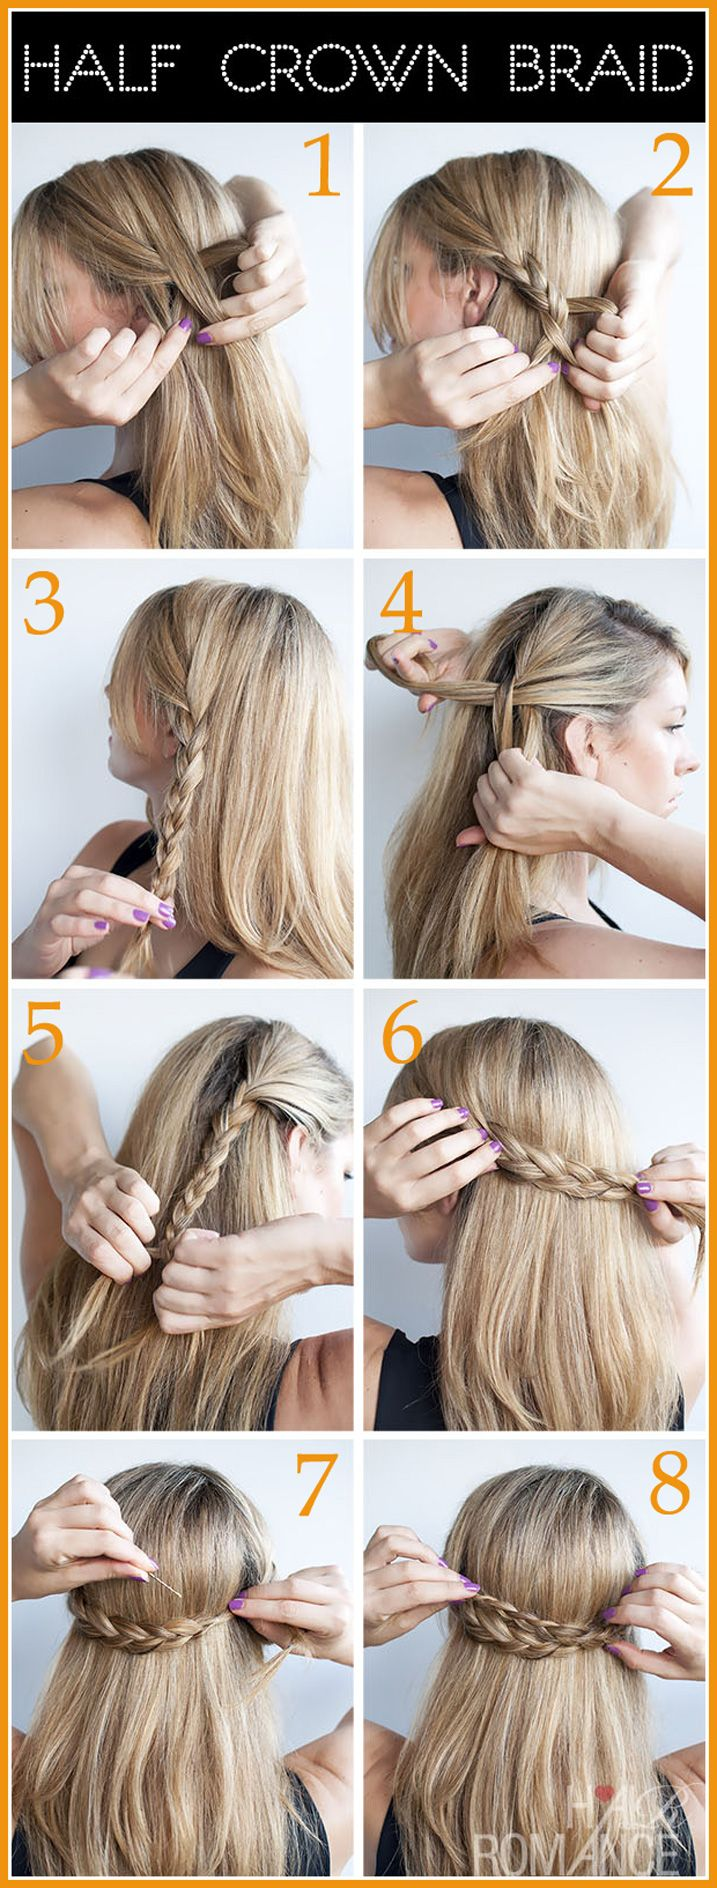 best images about tutoriais de cabelo on pinterest halo posts